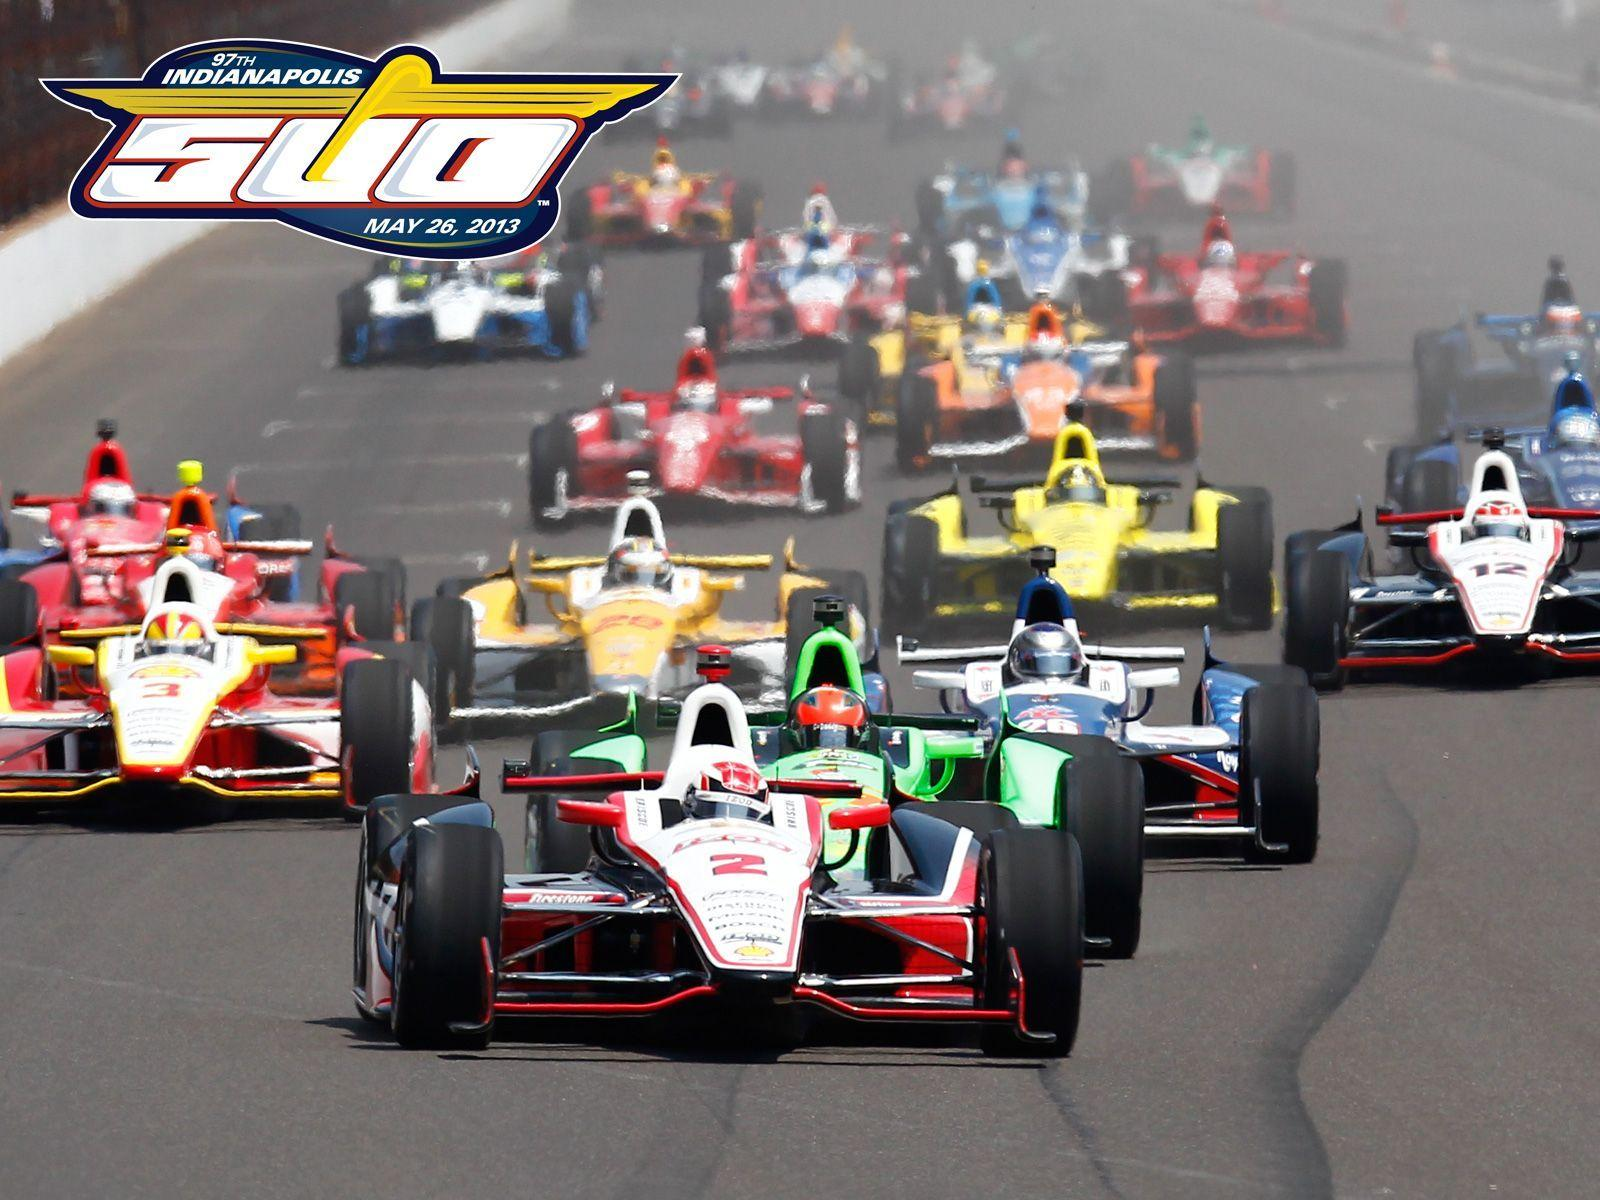 Indy 500 photos | Indy 500 - Wallpapers - Indianapolis 500 ...